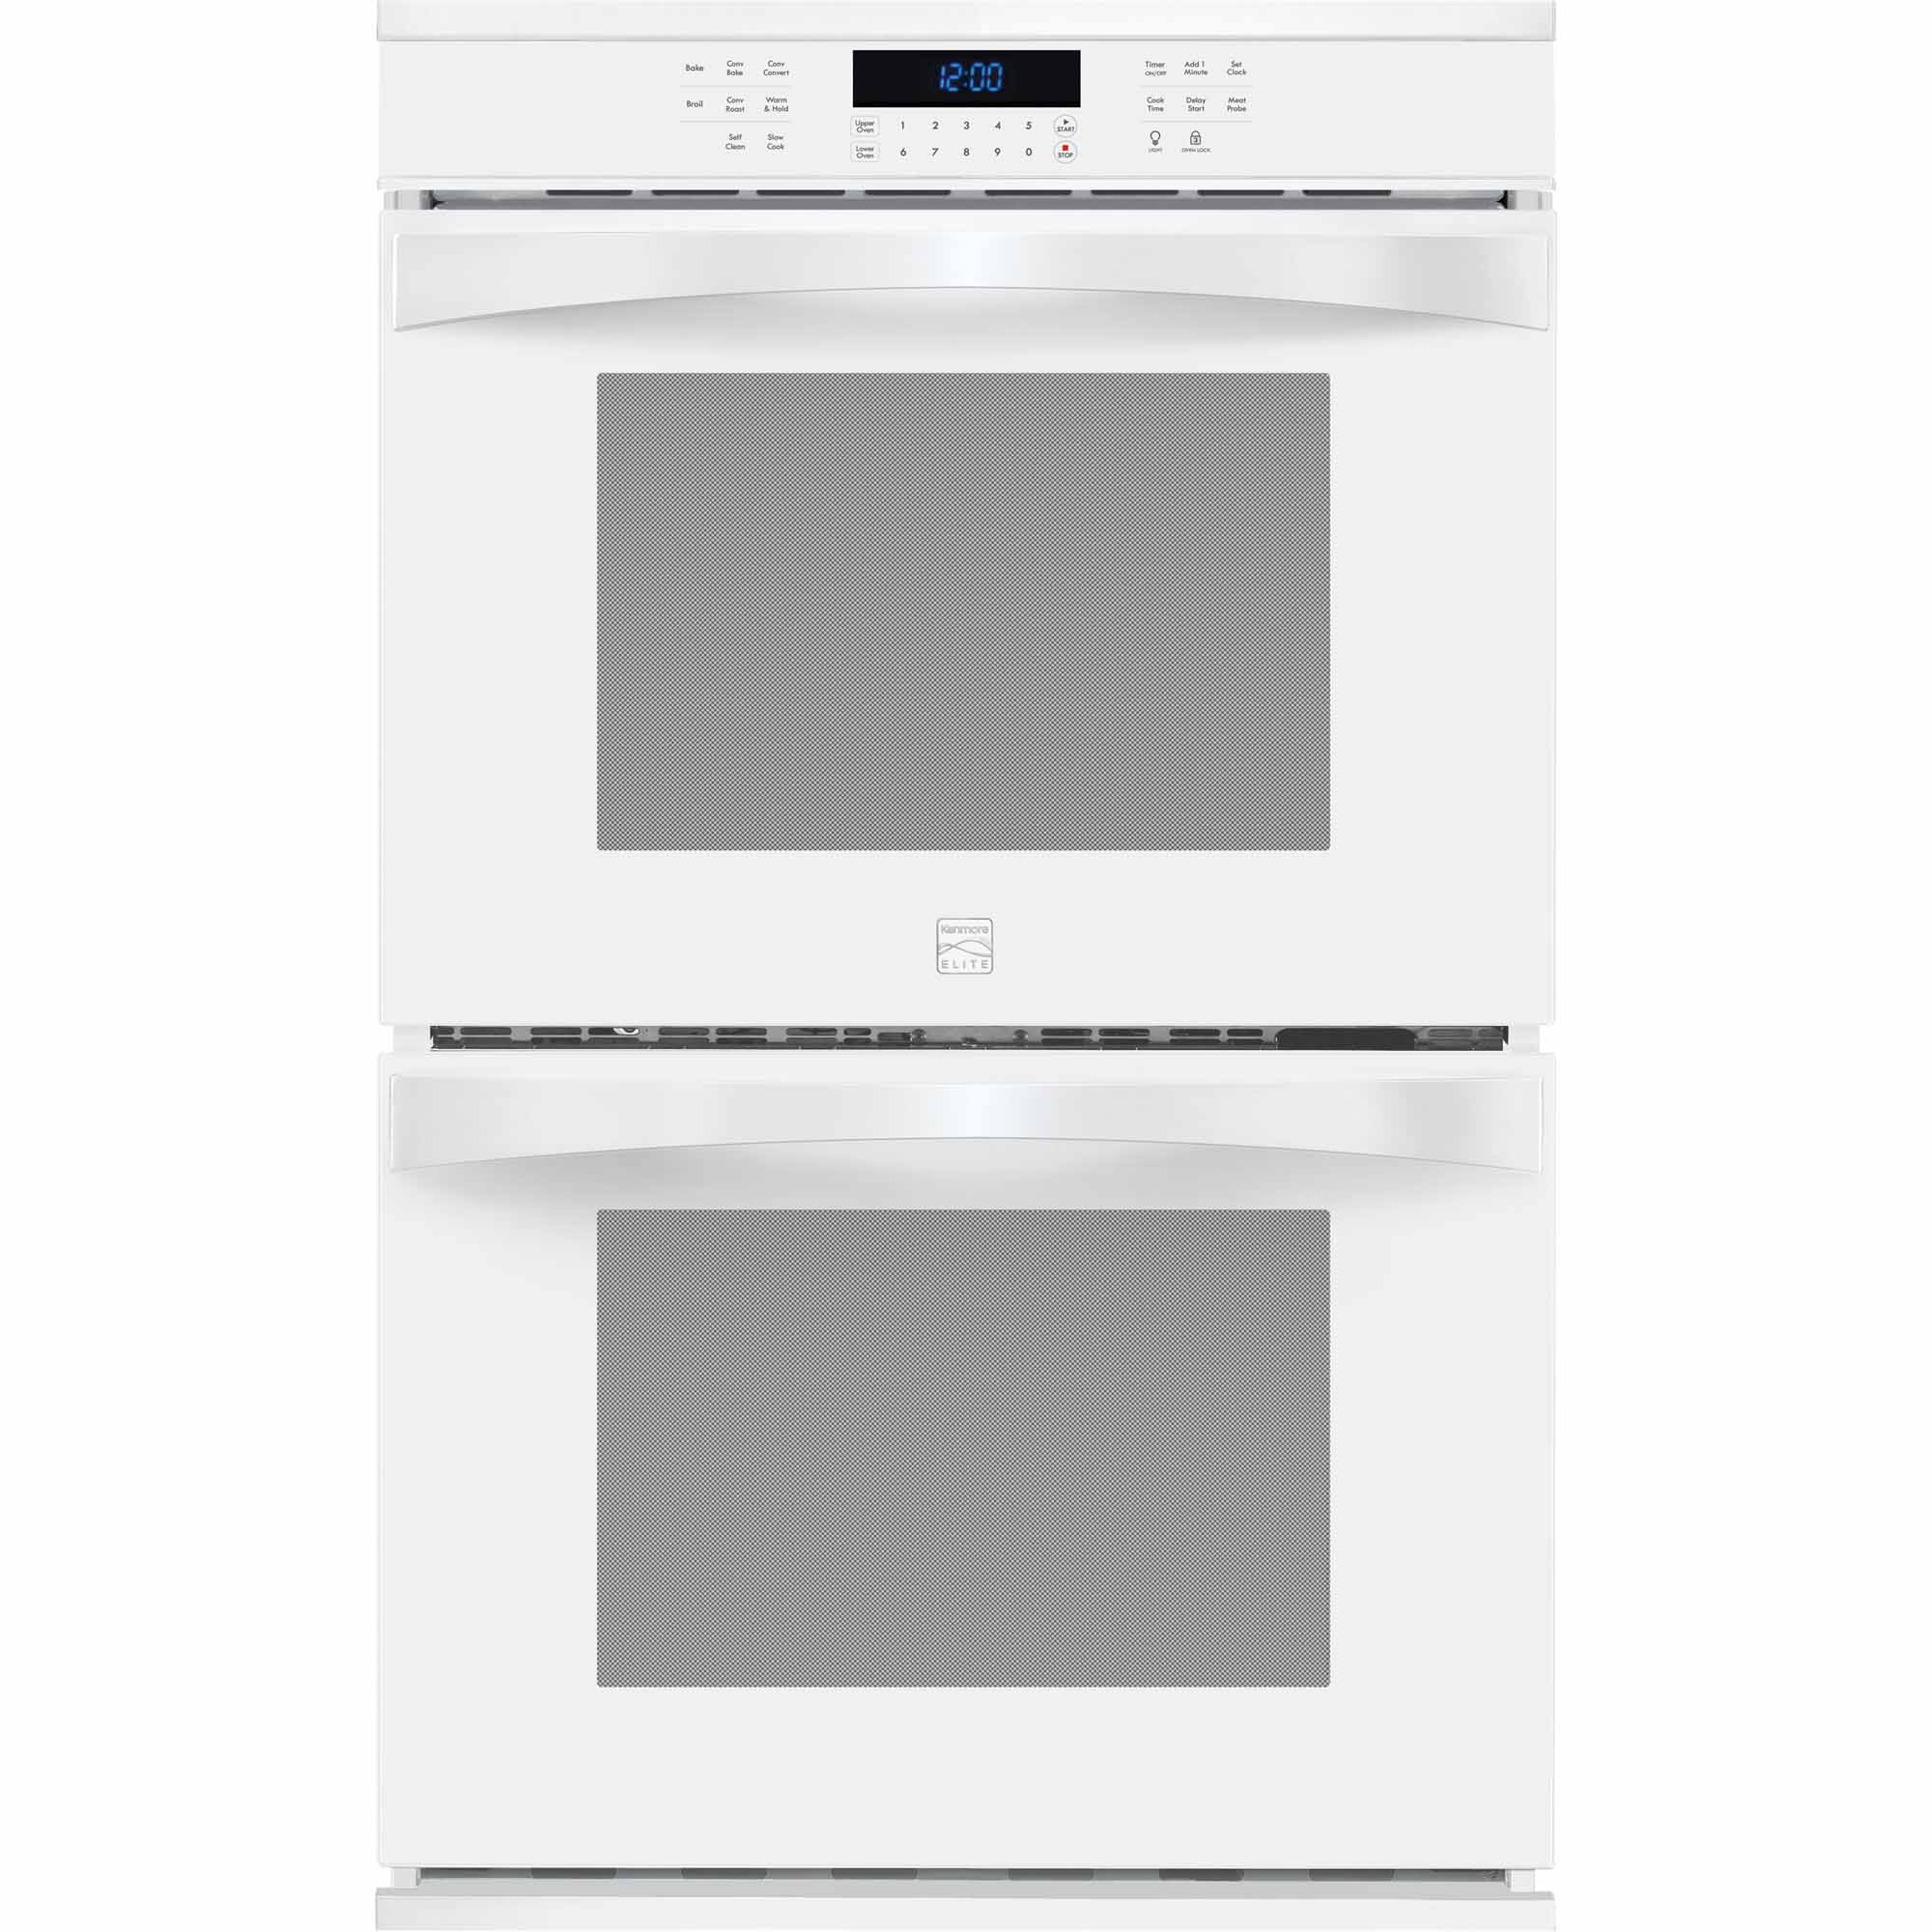 Kenmore Elite 48452 30 Electric Double Wall Oven - White